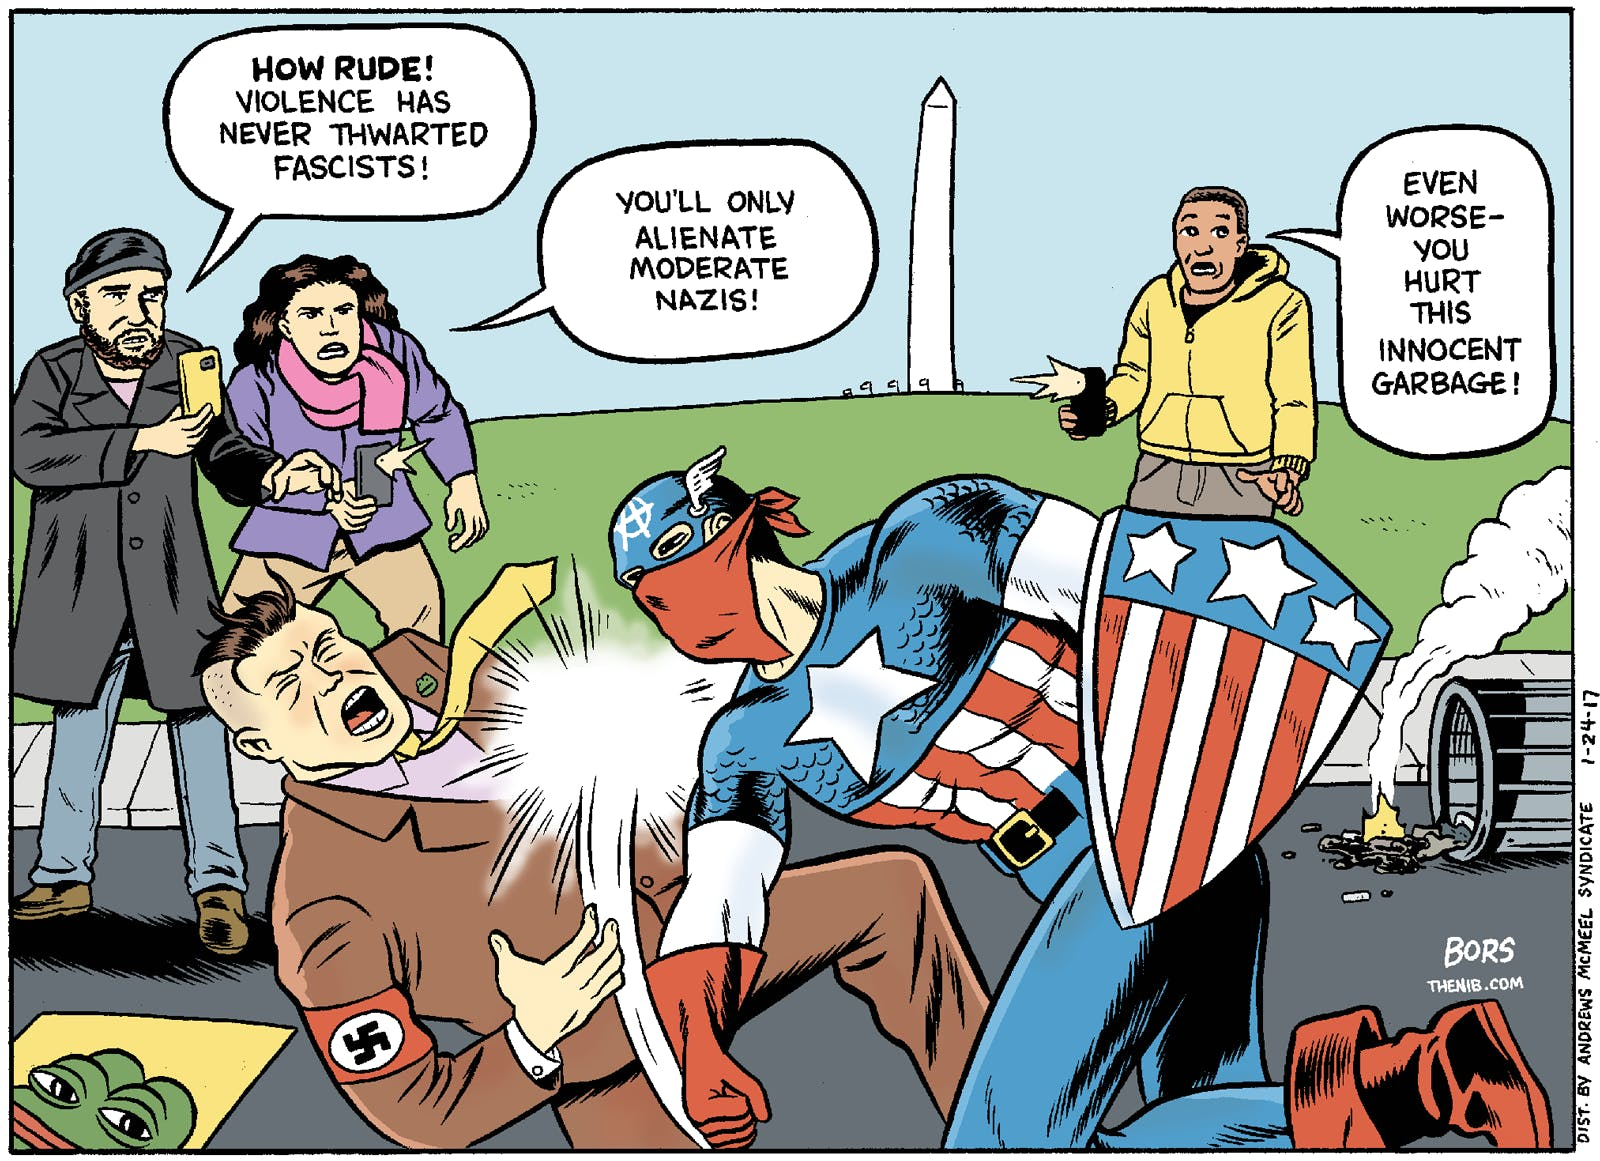 Comic by Matt Bors, who articulates many of my friends position well.